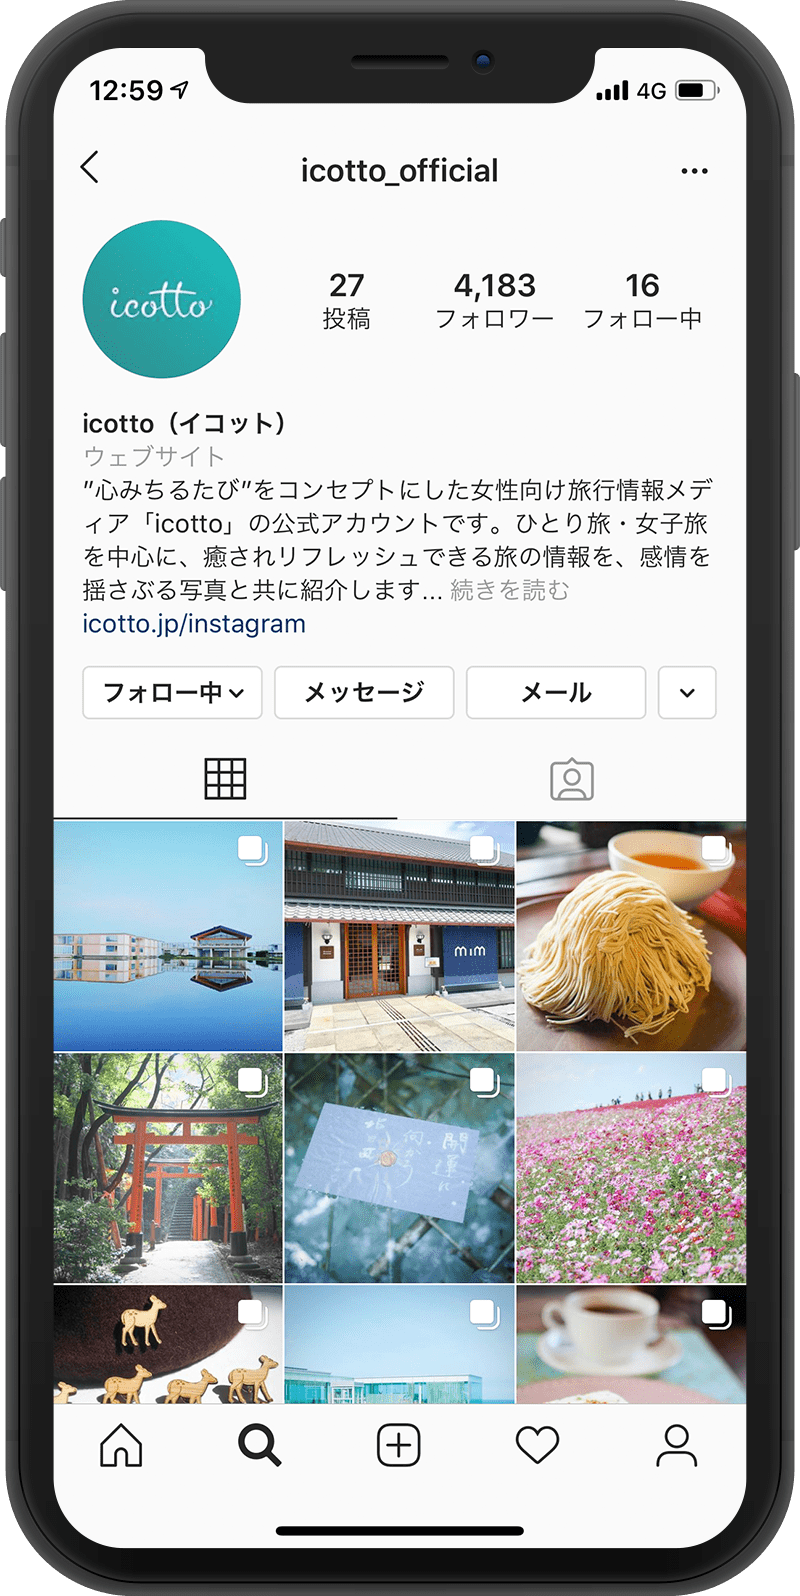 icotto公式Instagramをはじめました!